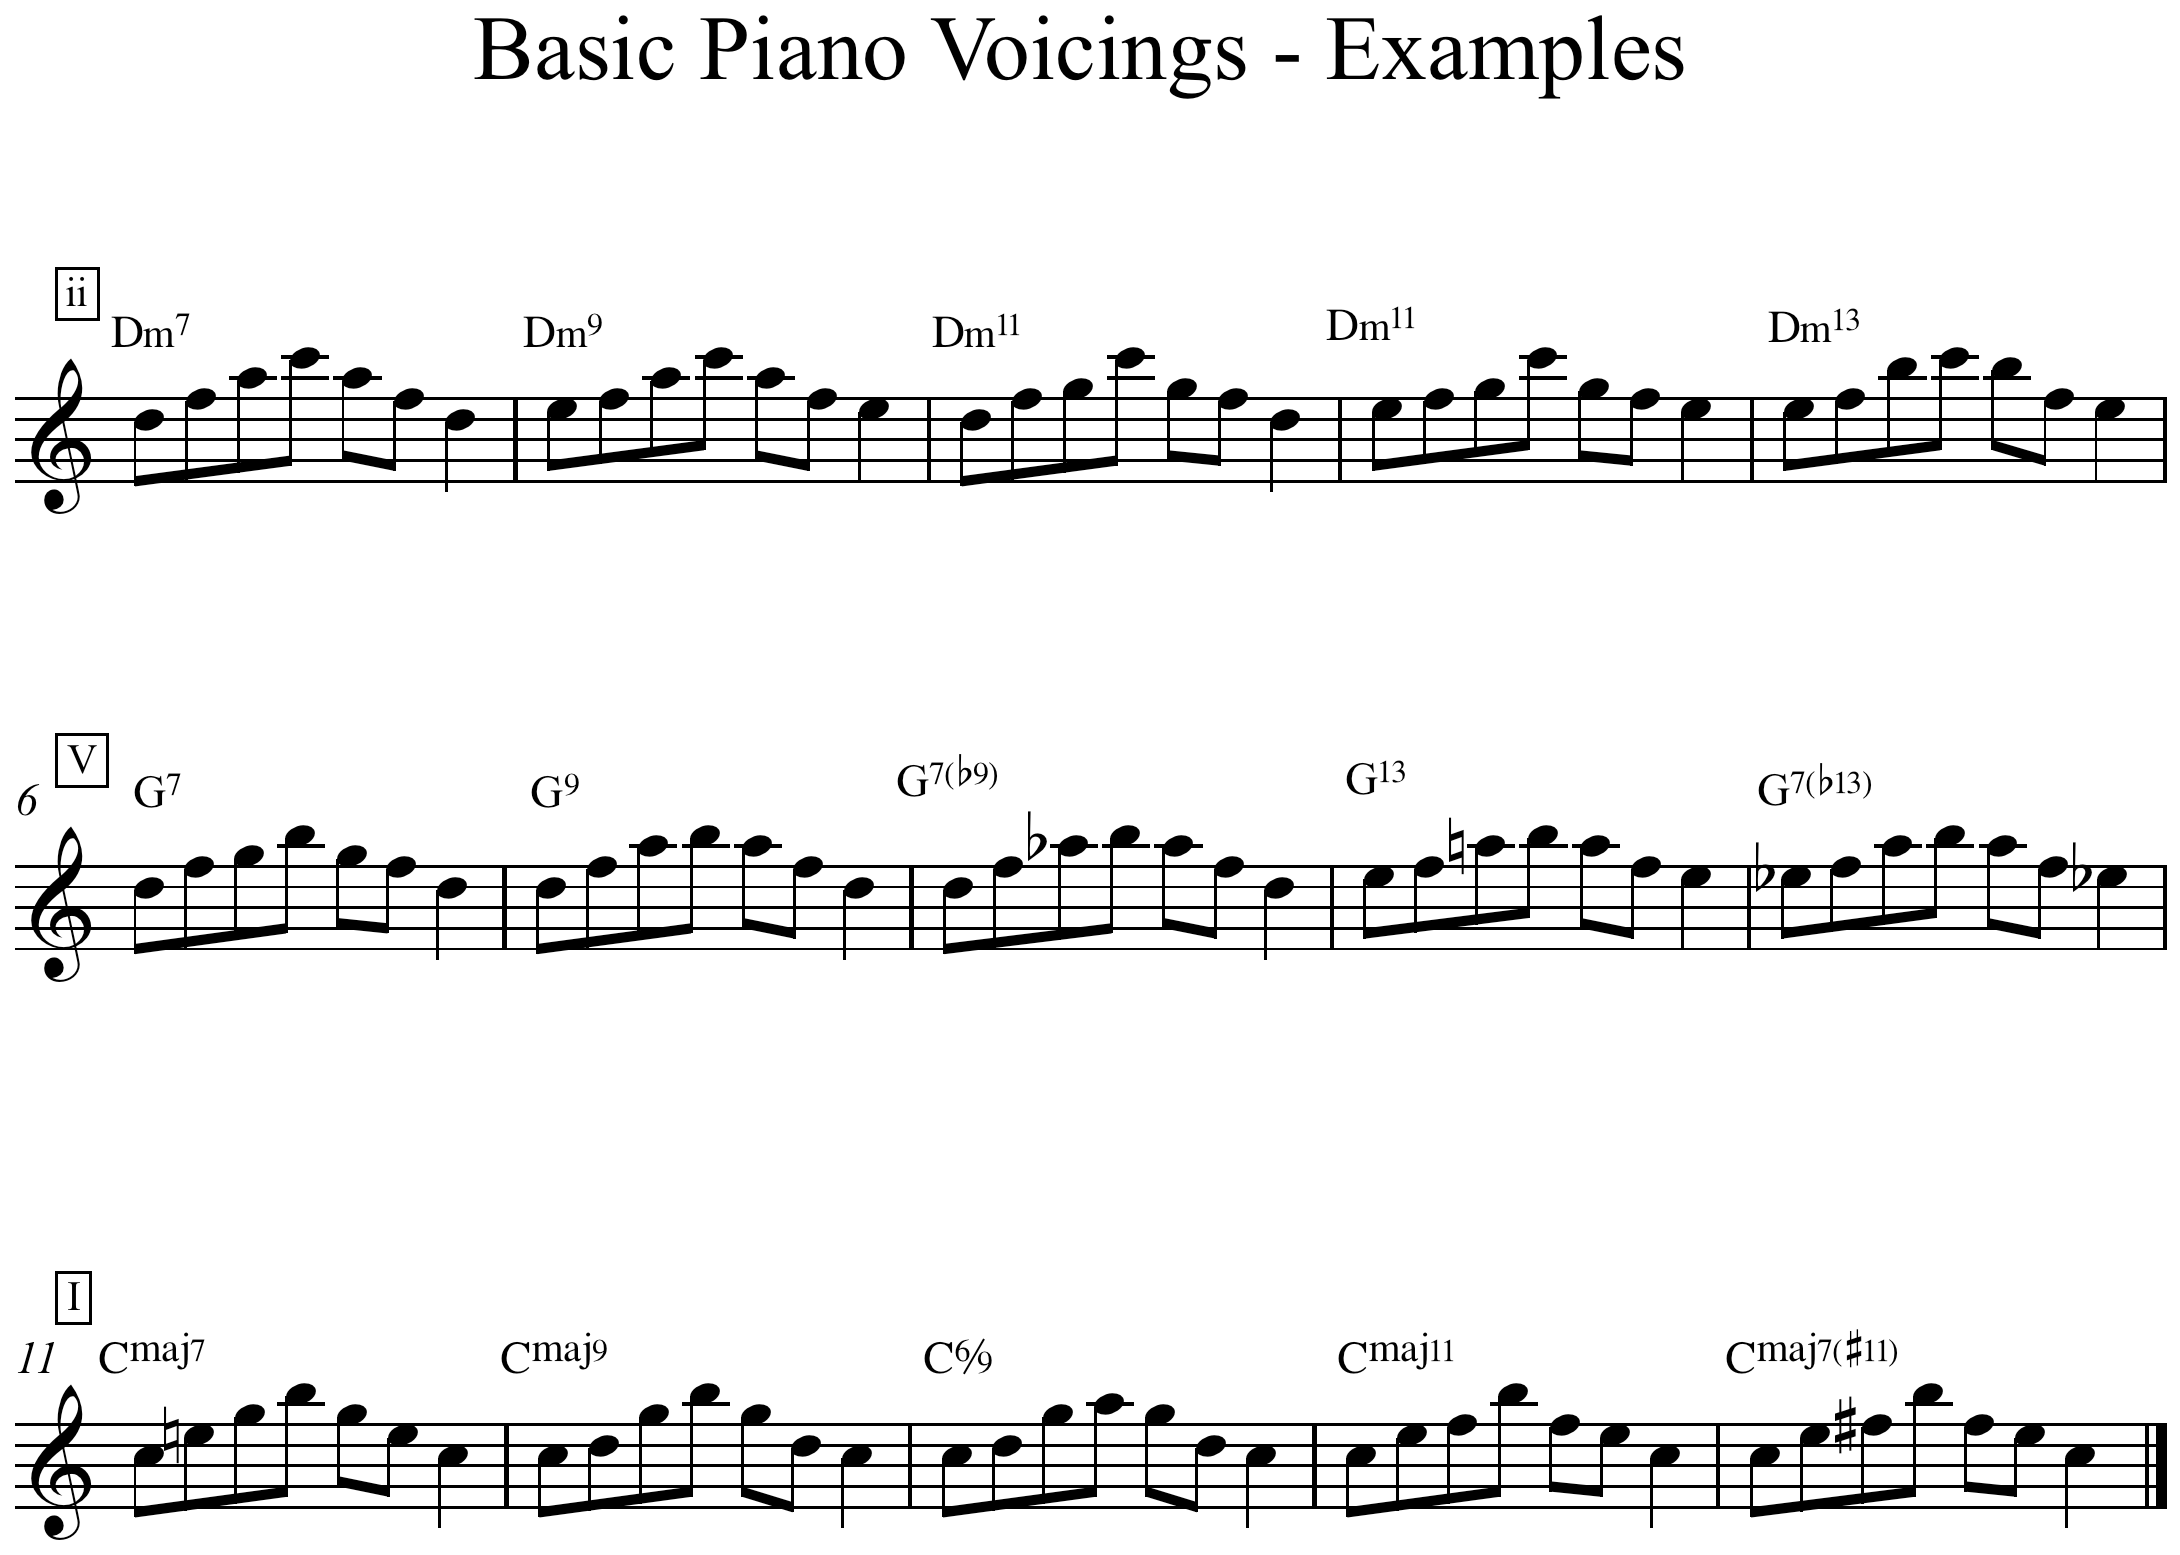 Arpeggiating basic piano voicings ii v i matthew shooby click for larger image hexwebz Images